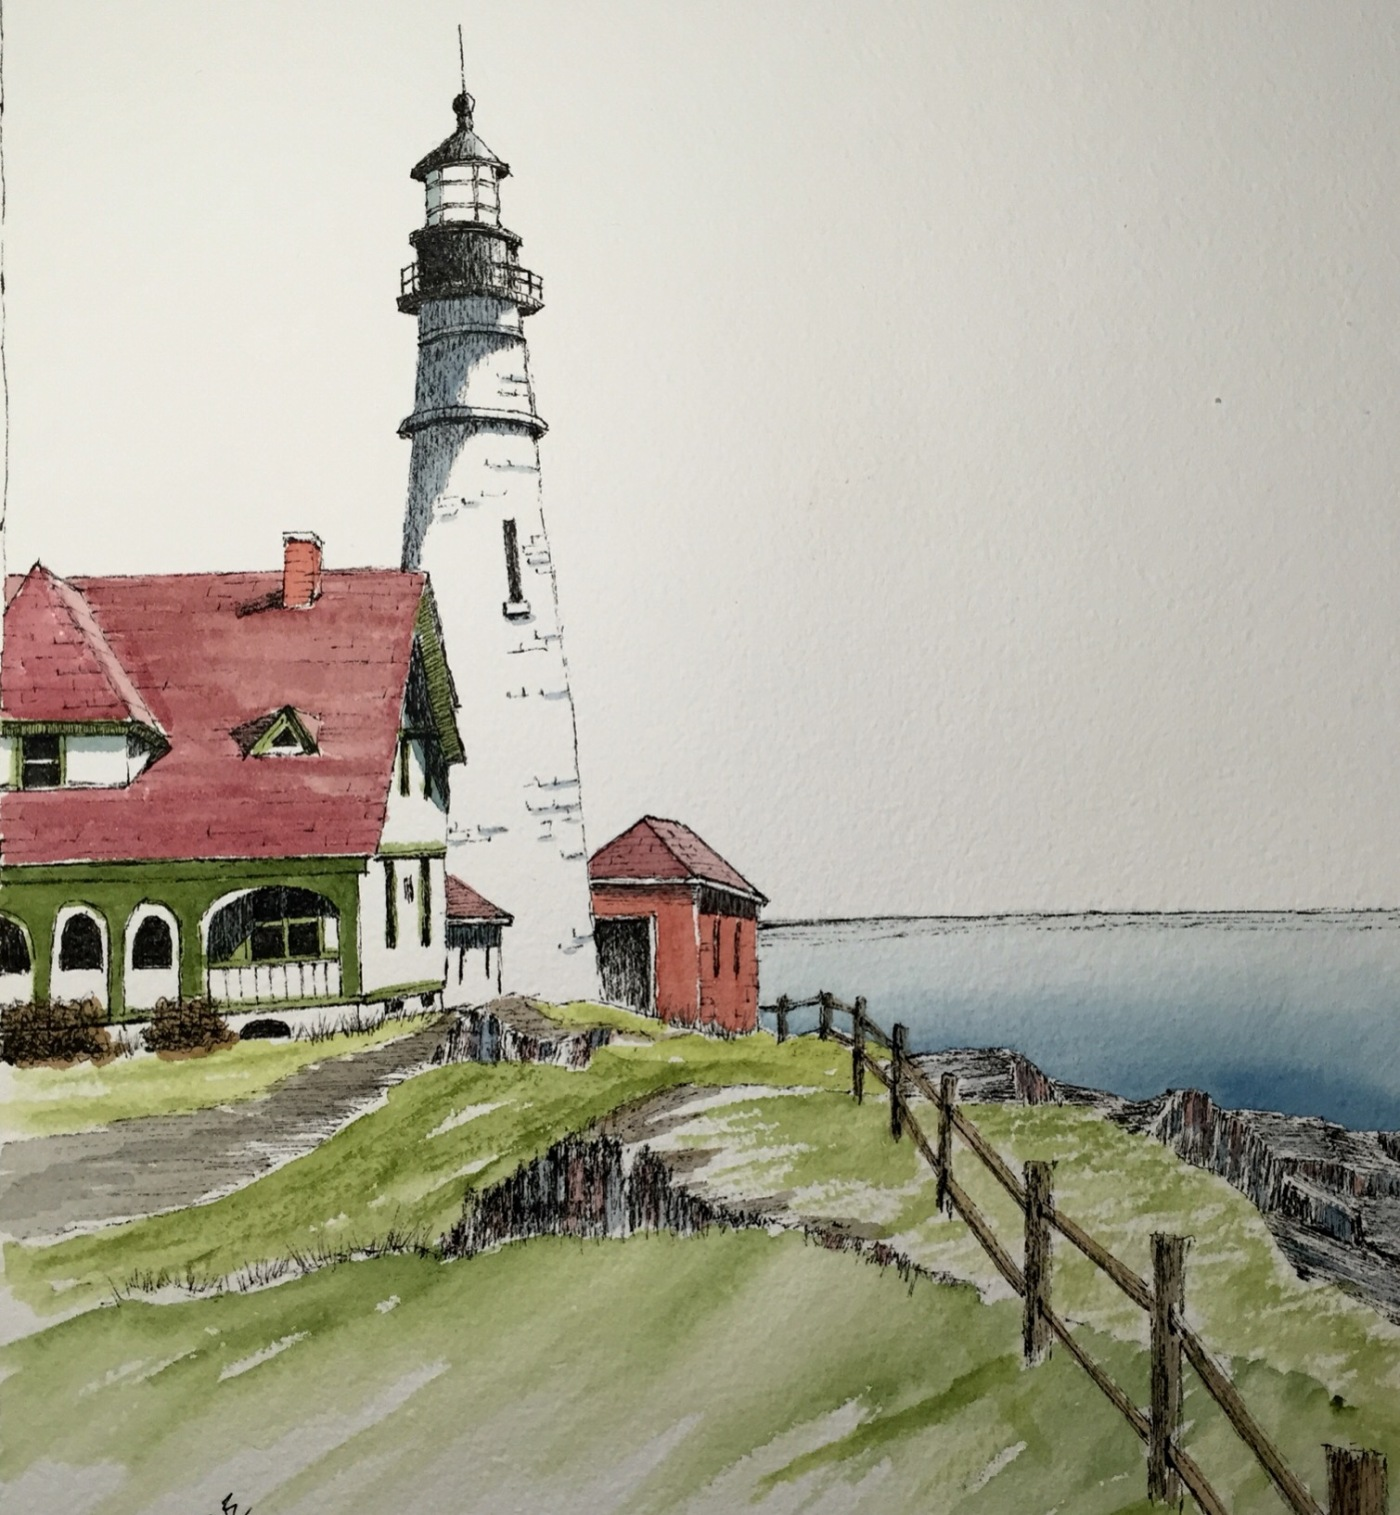 Lighthouse in Maine by Jay Vance - doodlewash and watercolor sketch of lighthouse building on coast of Maine